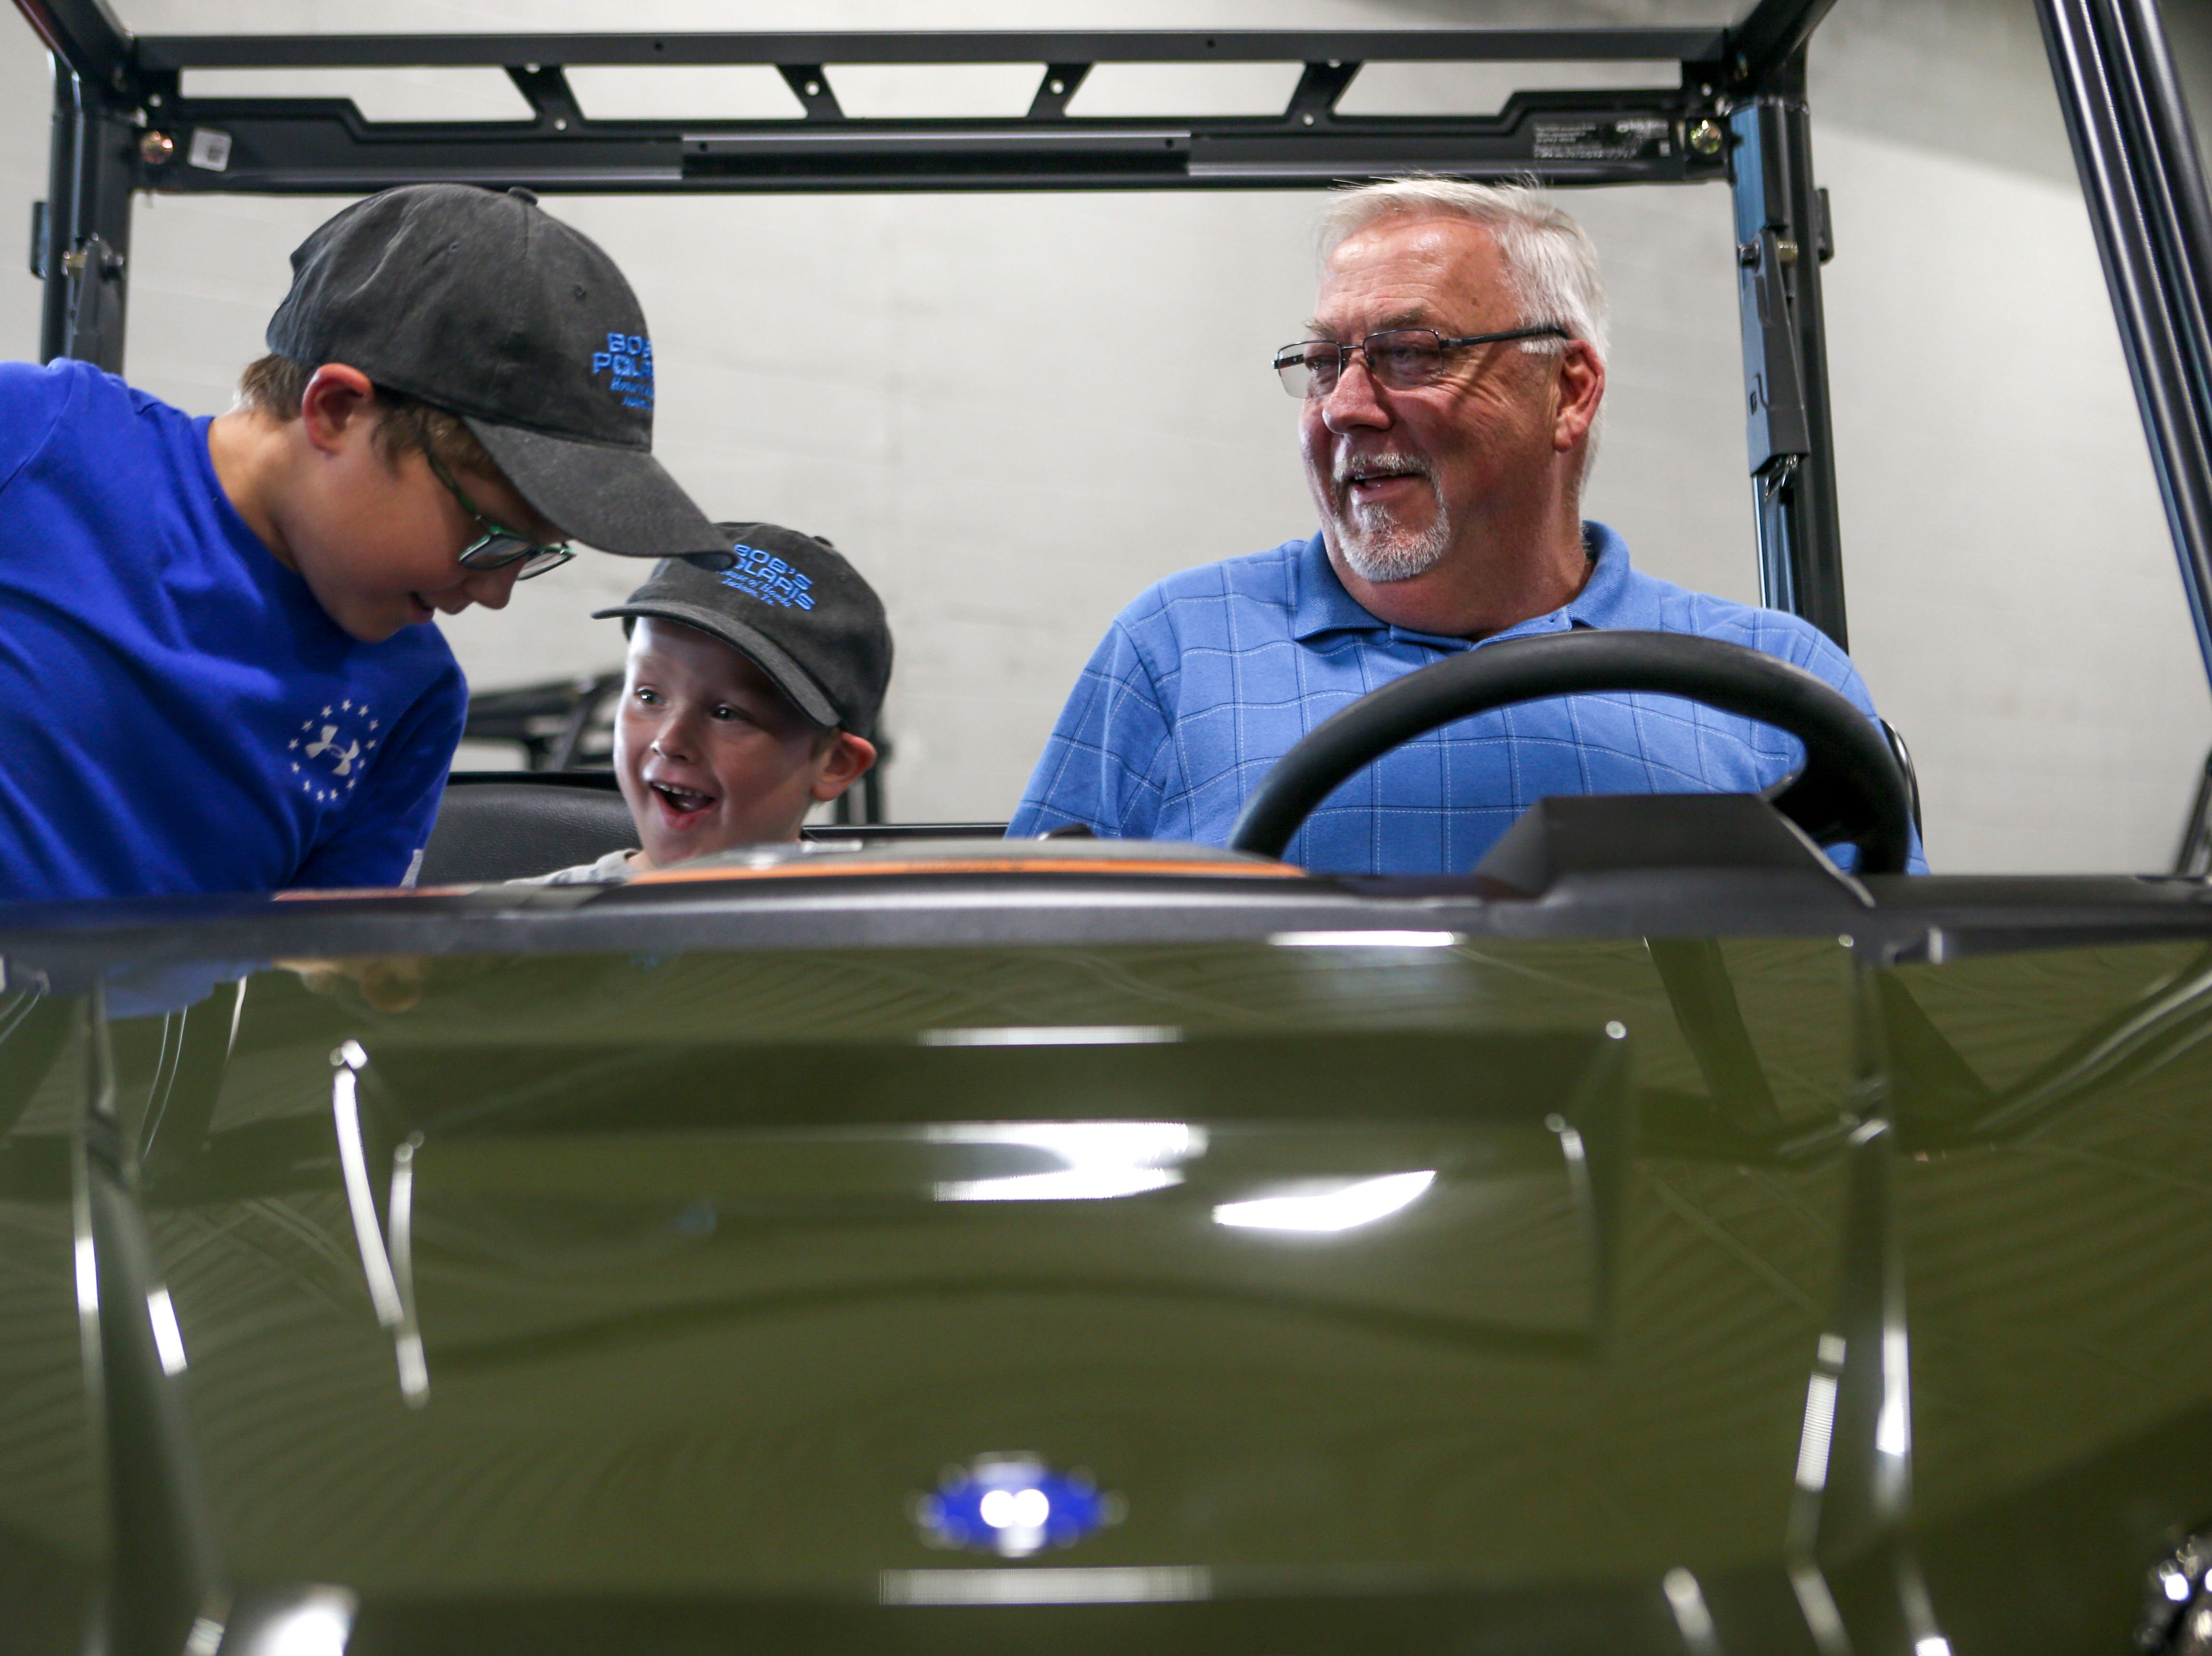 John Patrick Coleman, 4, center, and his brother Bradley Coleman, 8, left, jump up to join their grandfather John Coleman, right, seated in a model Polaris after Coleman won an ATV in a contest with Lifeline Blood Services at Bob's House of Honda in Jackson, Tenn., on Thursday, Sept. 20, 2018.